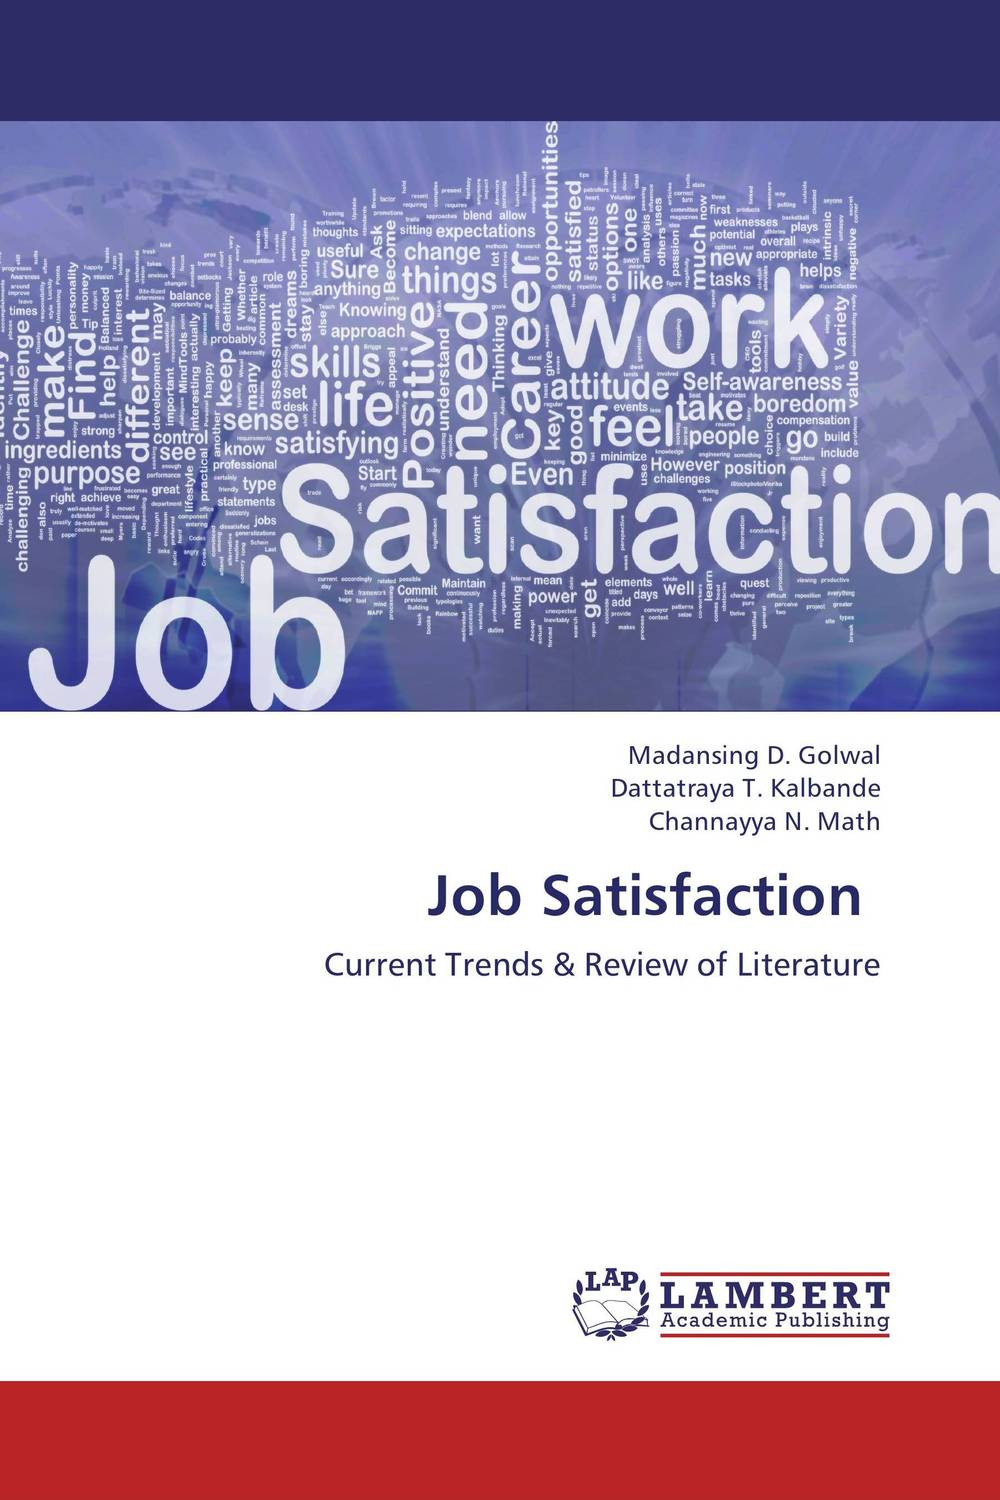 Job Satisfaction impact of job satisfaction on turnover intentions